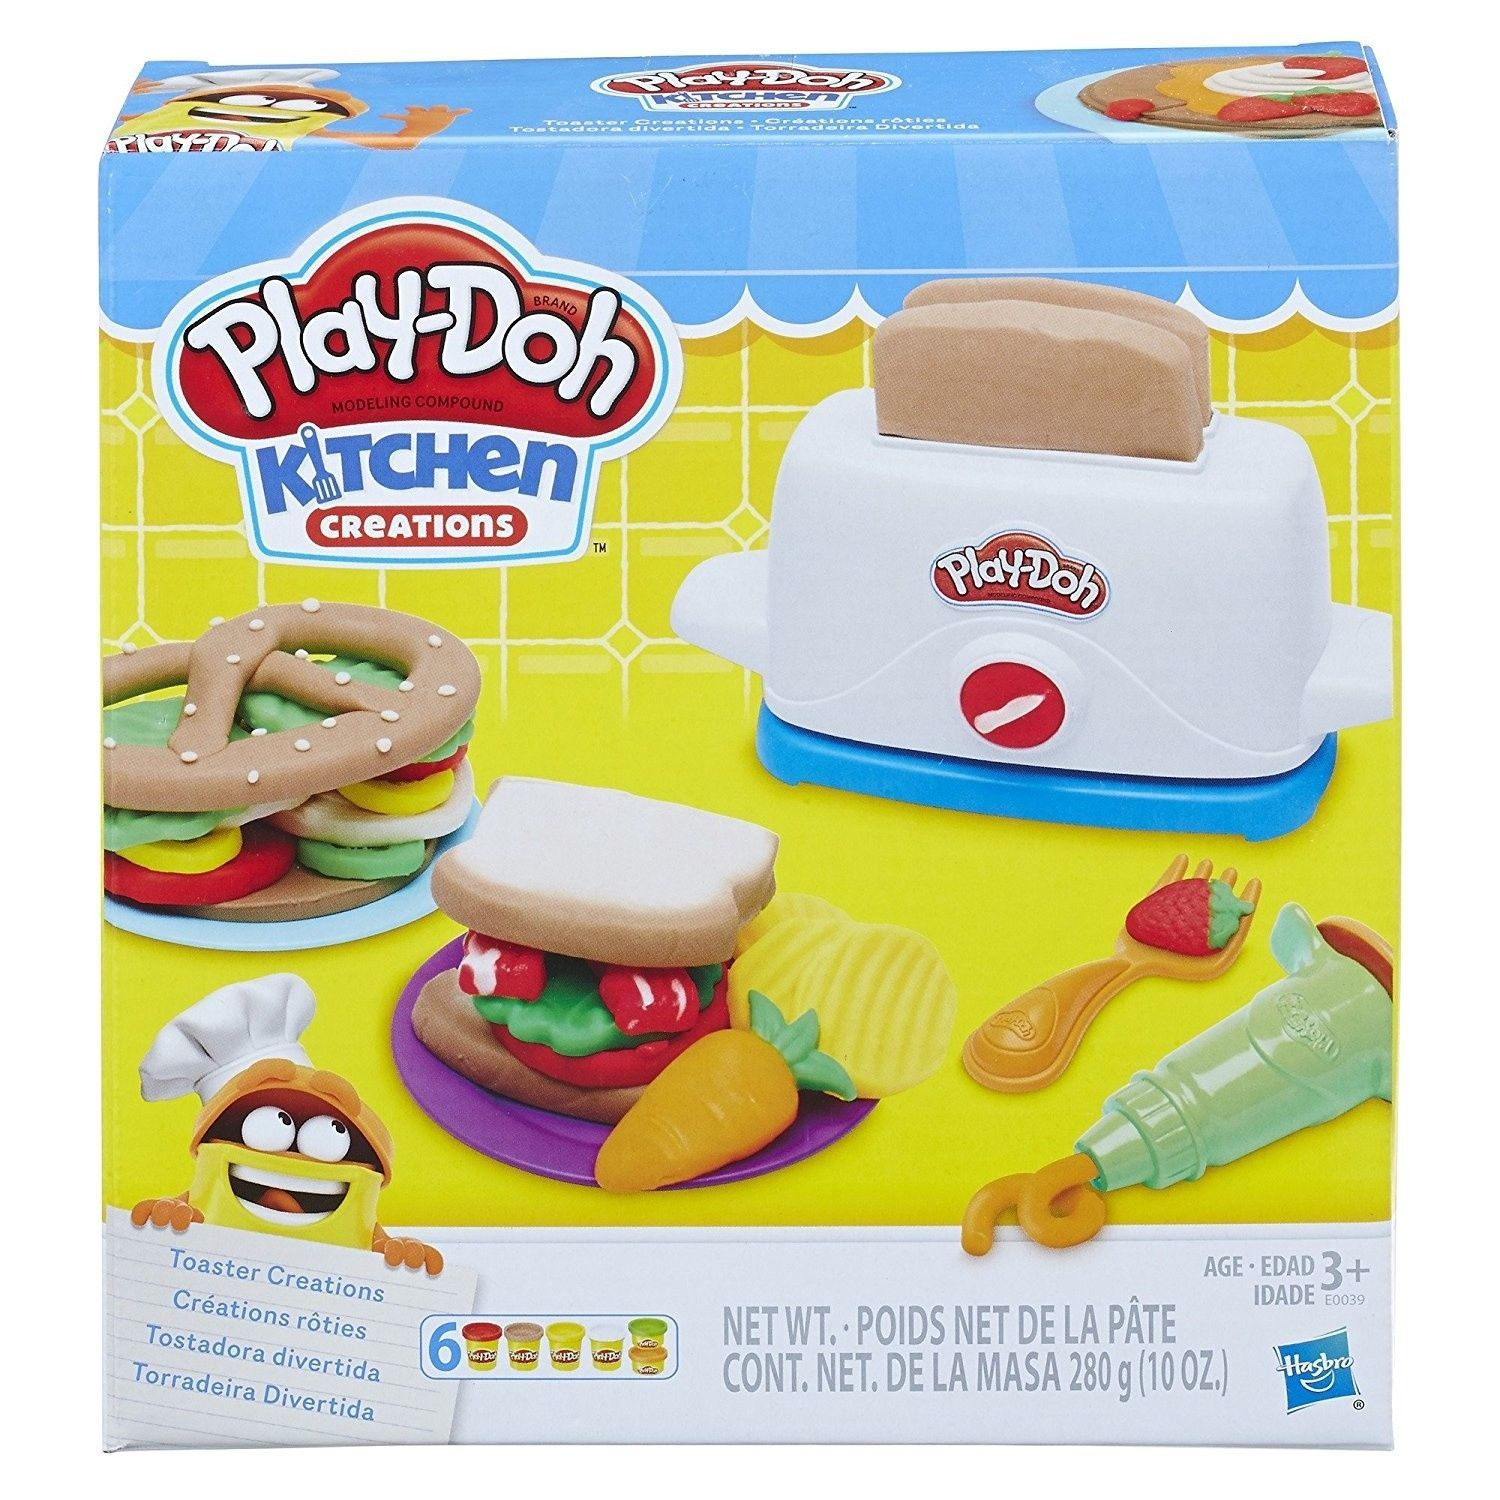 Play-Doh: Kitchen Creations - Toaster Creations image